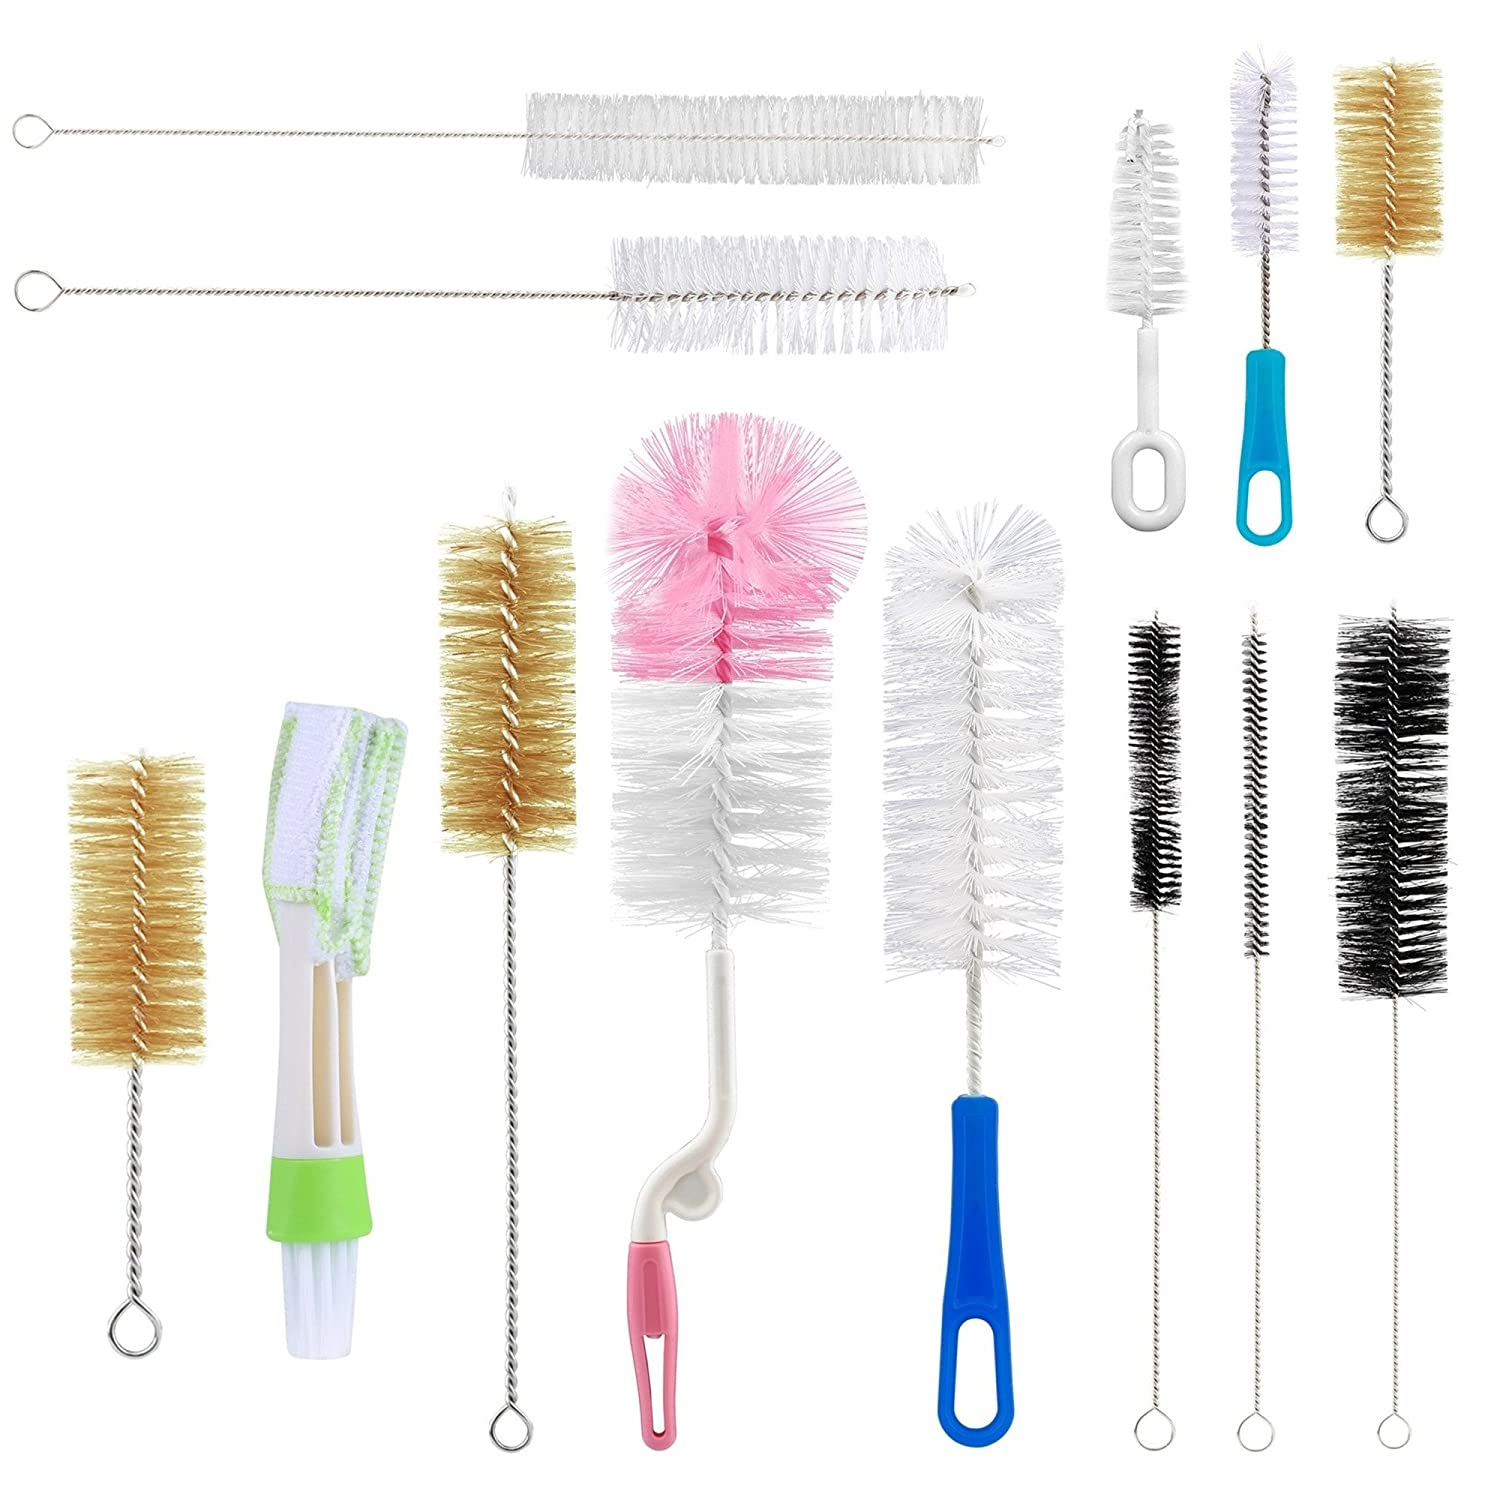 Yoassi 13Pc Food Grade Multipurpose Cleaning Brush Set, Includes Straw Brush|Nipple Cleaner|Bottle Brush|Blind Duster|Pipe Cleaner, Small,Long,Soft,Stiff Kit for Baby Bottles,Tubes,Jars,Bird Feeder DIY Crafts ® India 1136